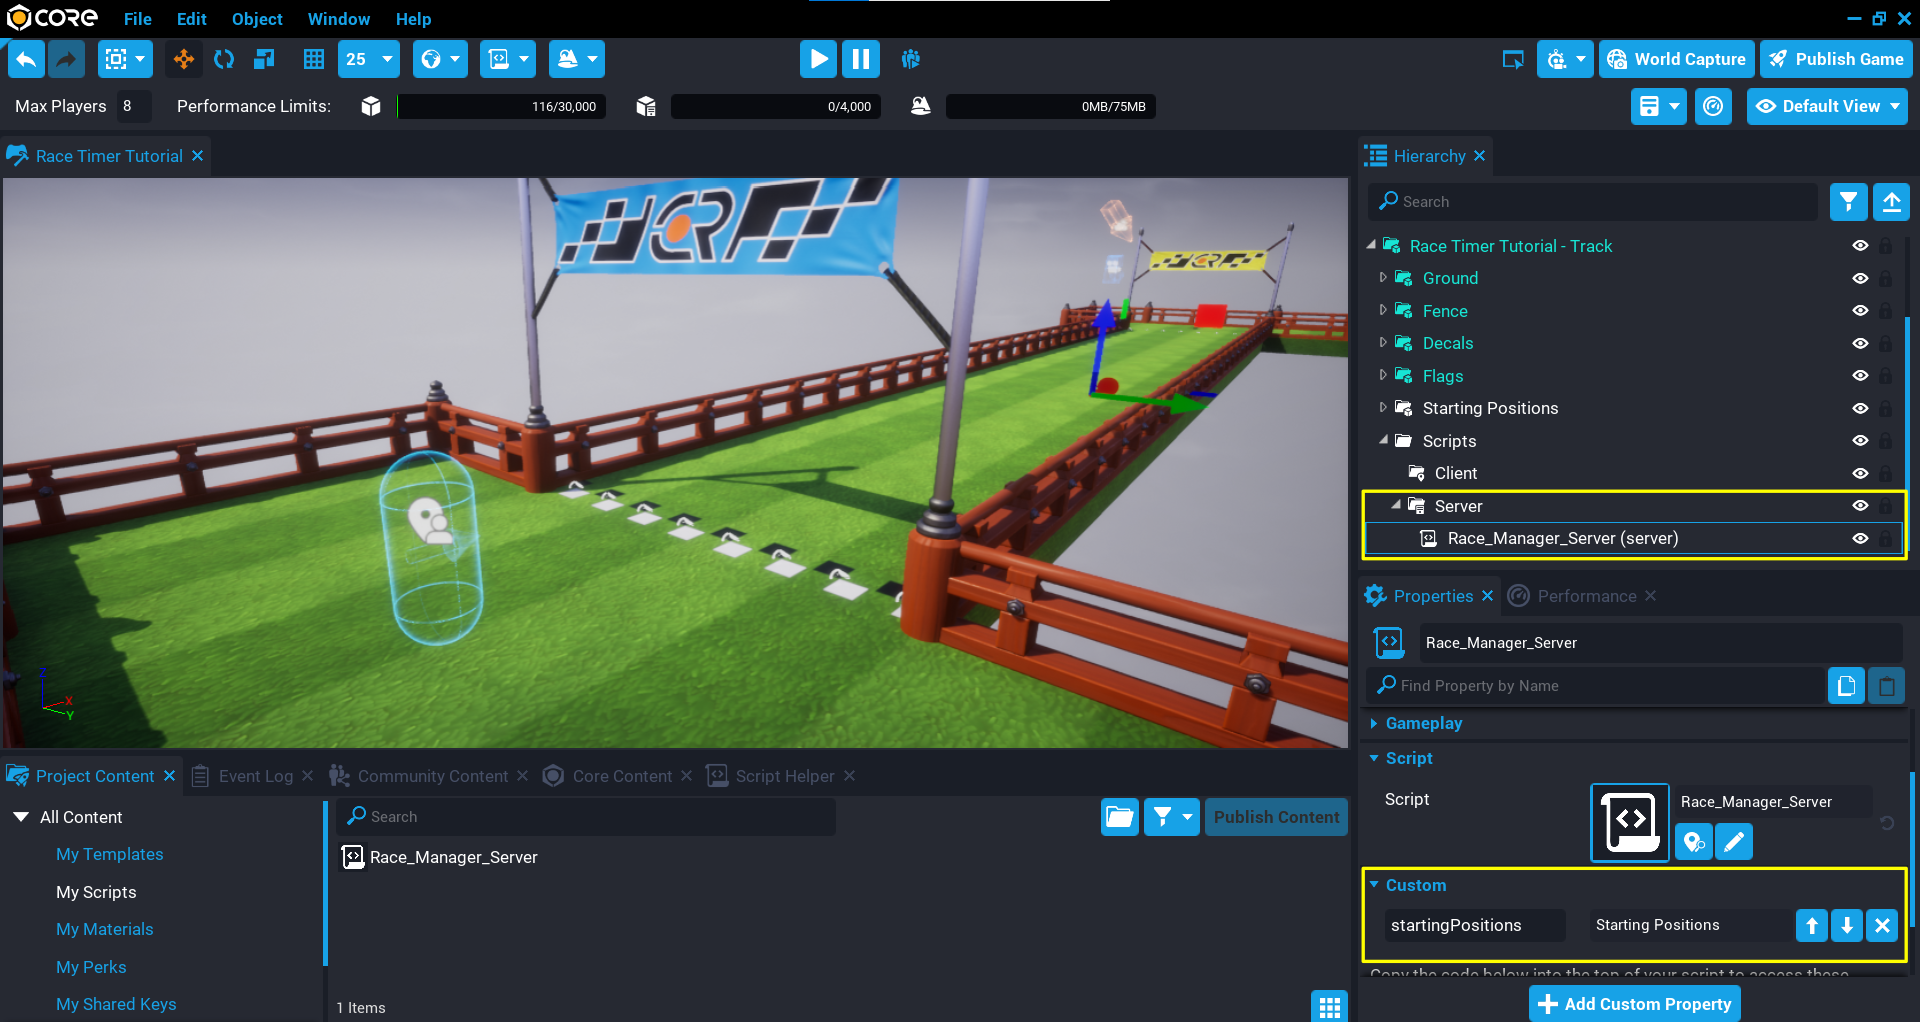 RaceManager_Server Script and Custom Property